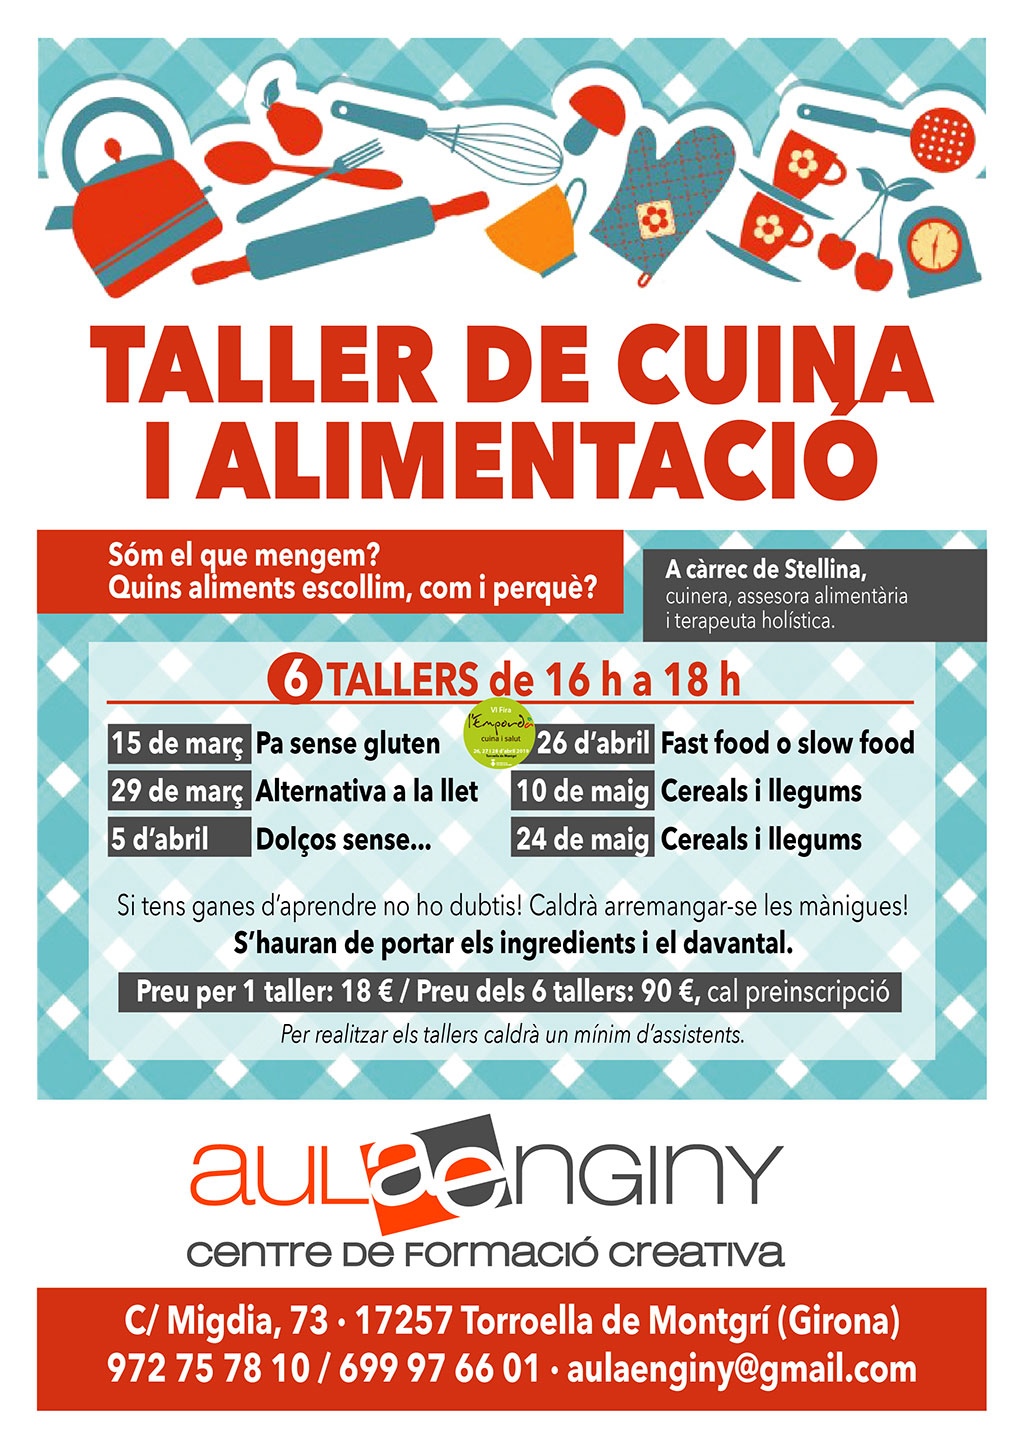 Tallers-cuina2-01